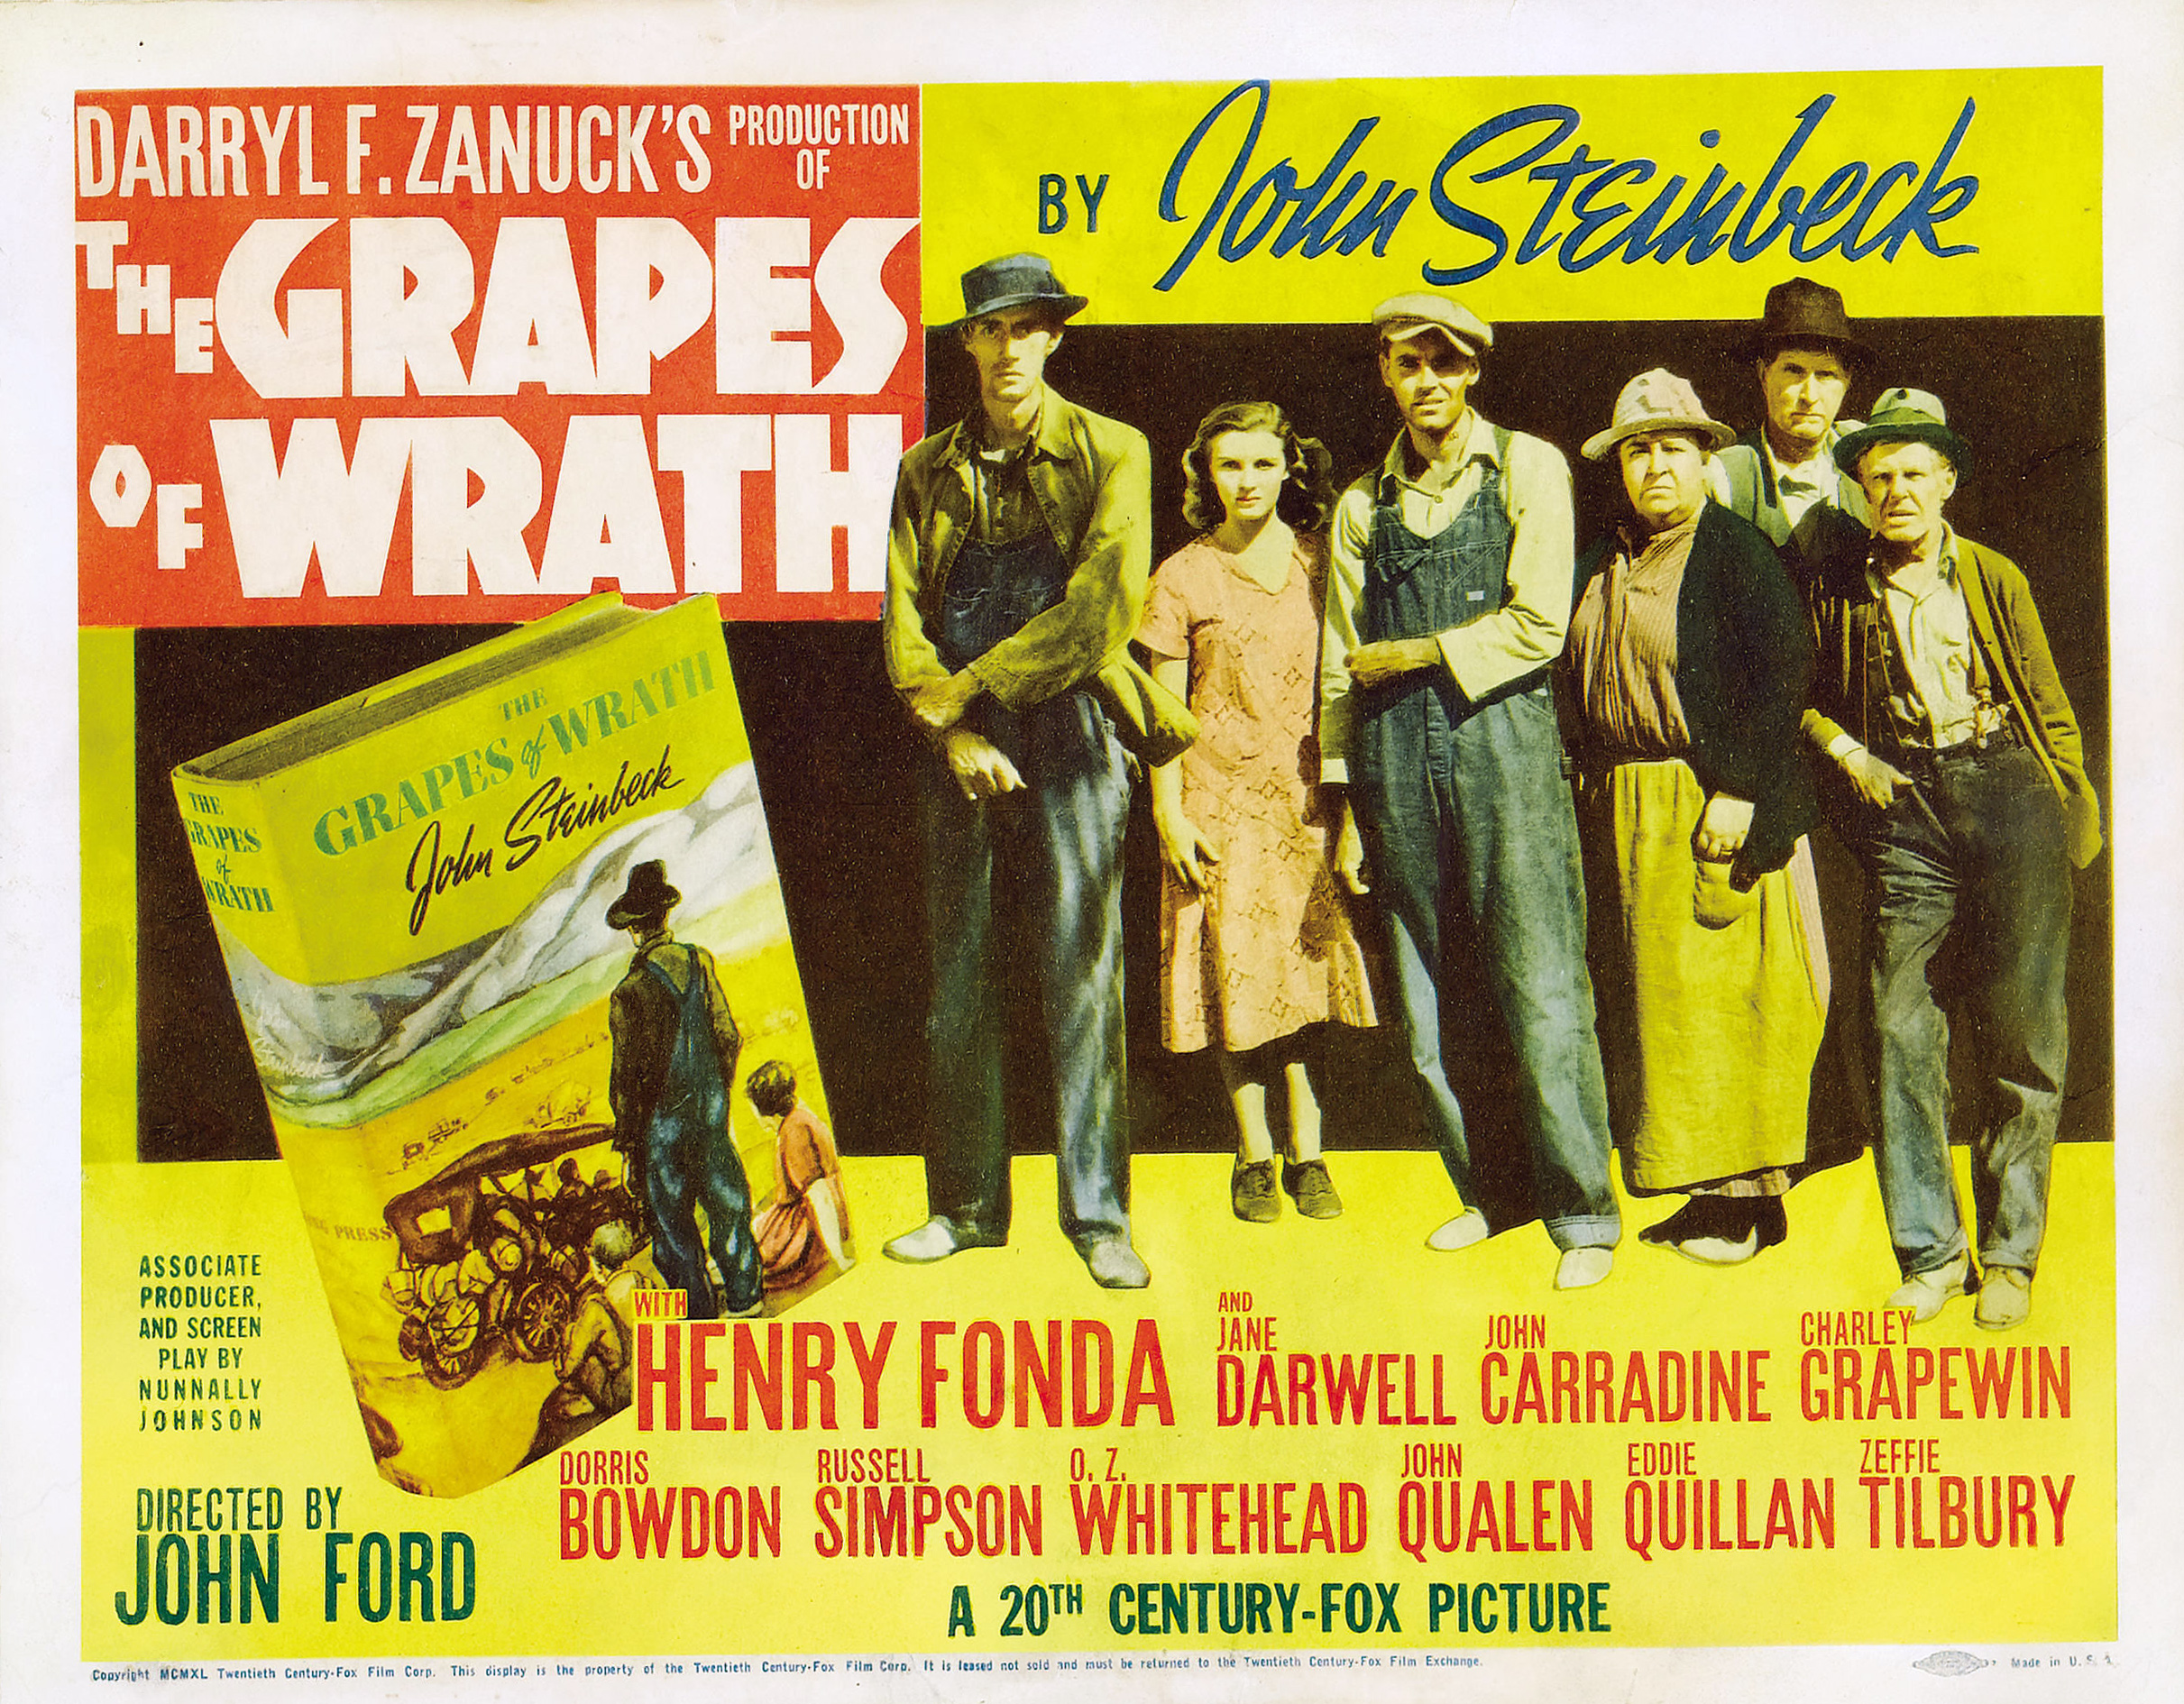 an analysis of the film the grapes of wrath Grapes of wrath (1940) expresses how achieving the american dream is often futile the movie, based on the book by john steinbeck, explains the living conditions of families in oklahoma during the great depression the film tells the fictitious story of the joad family who aspires to travel west .